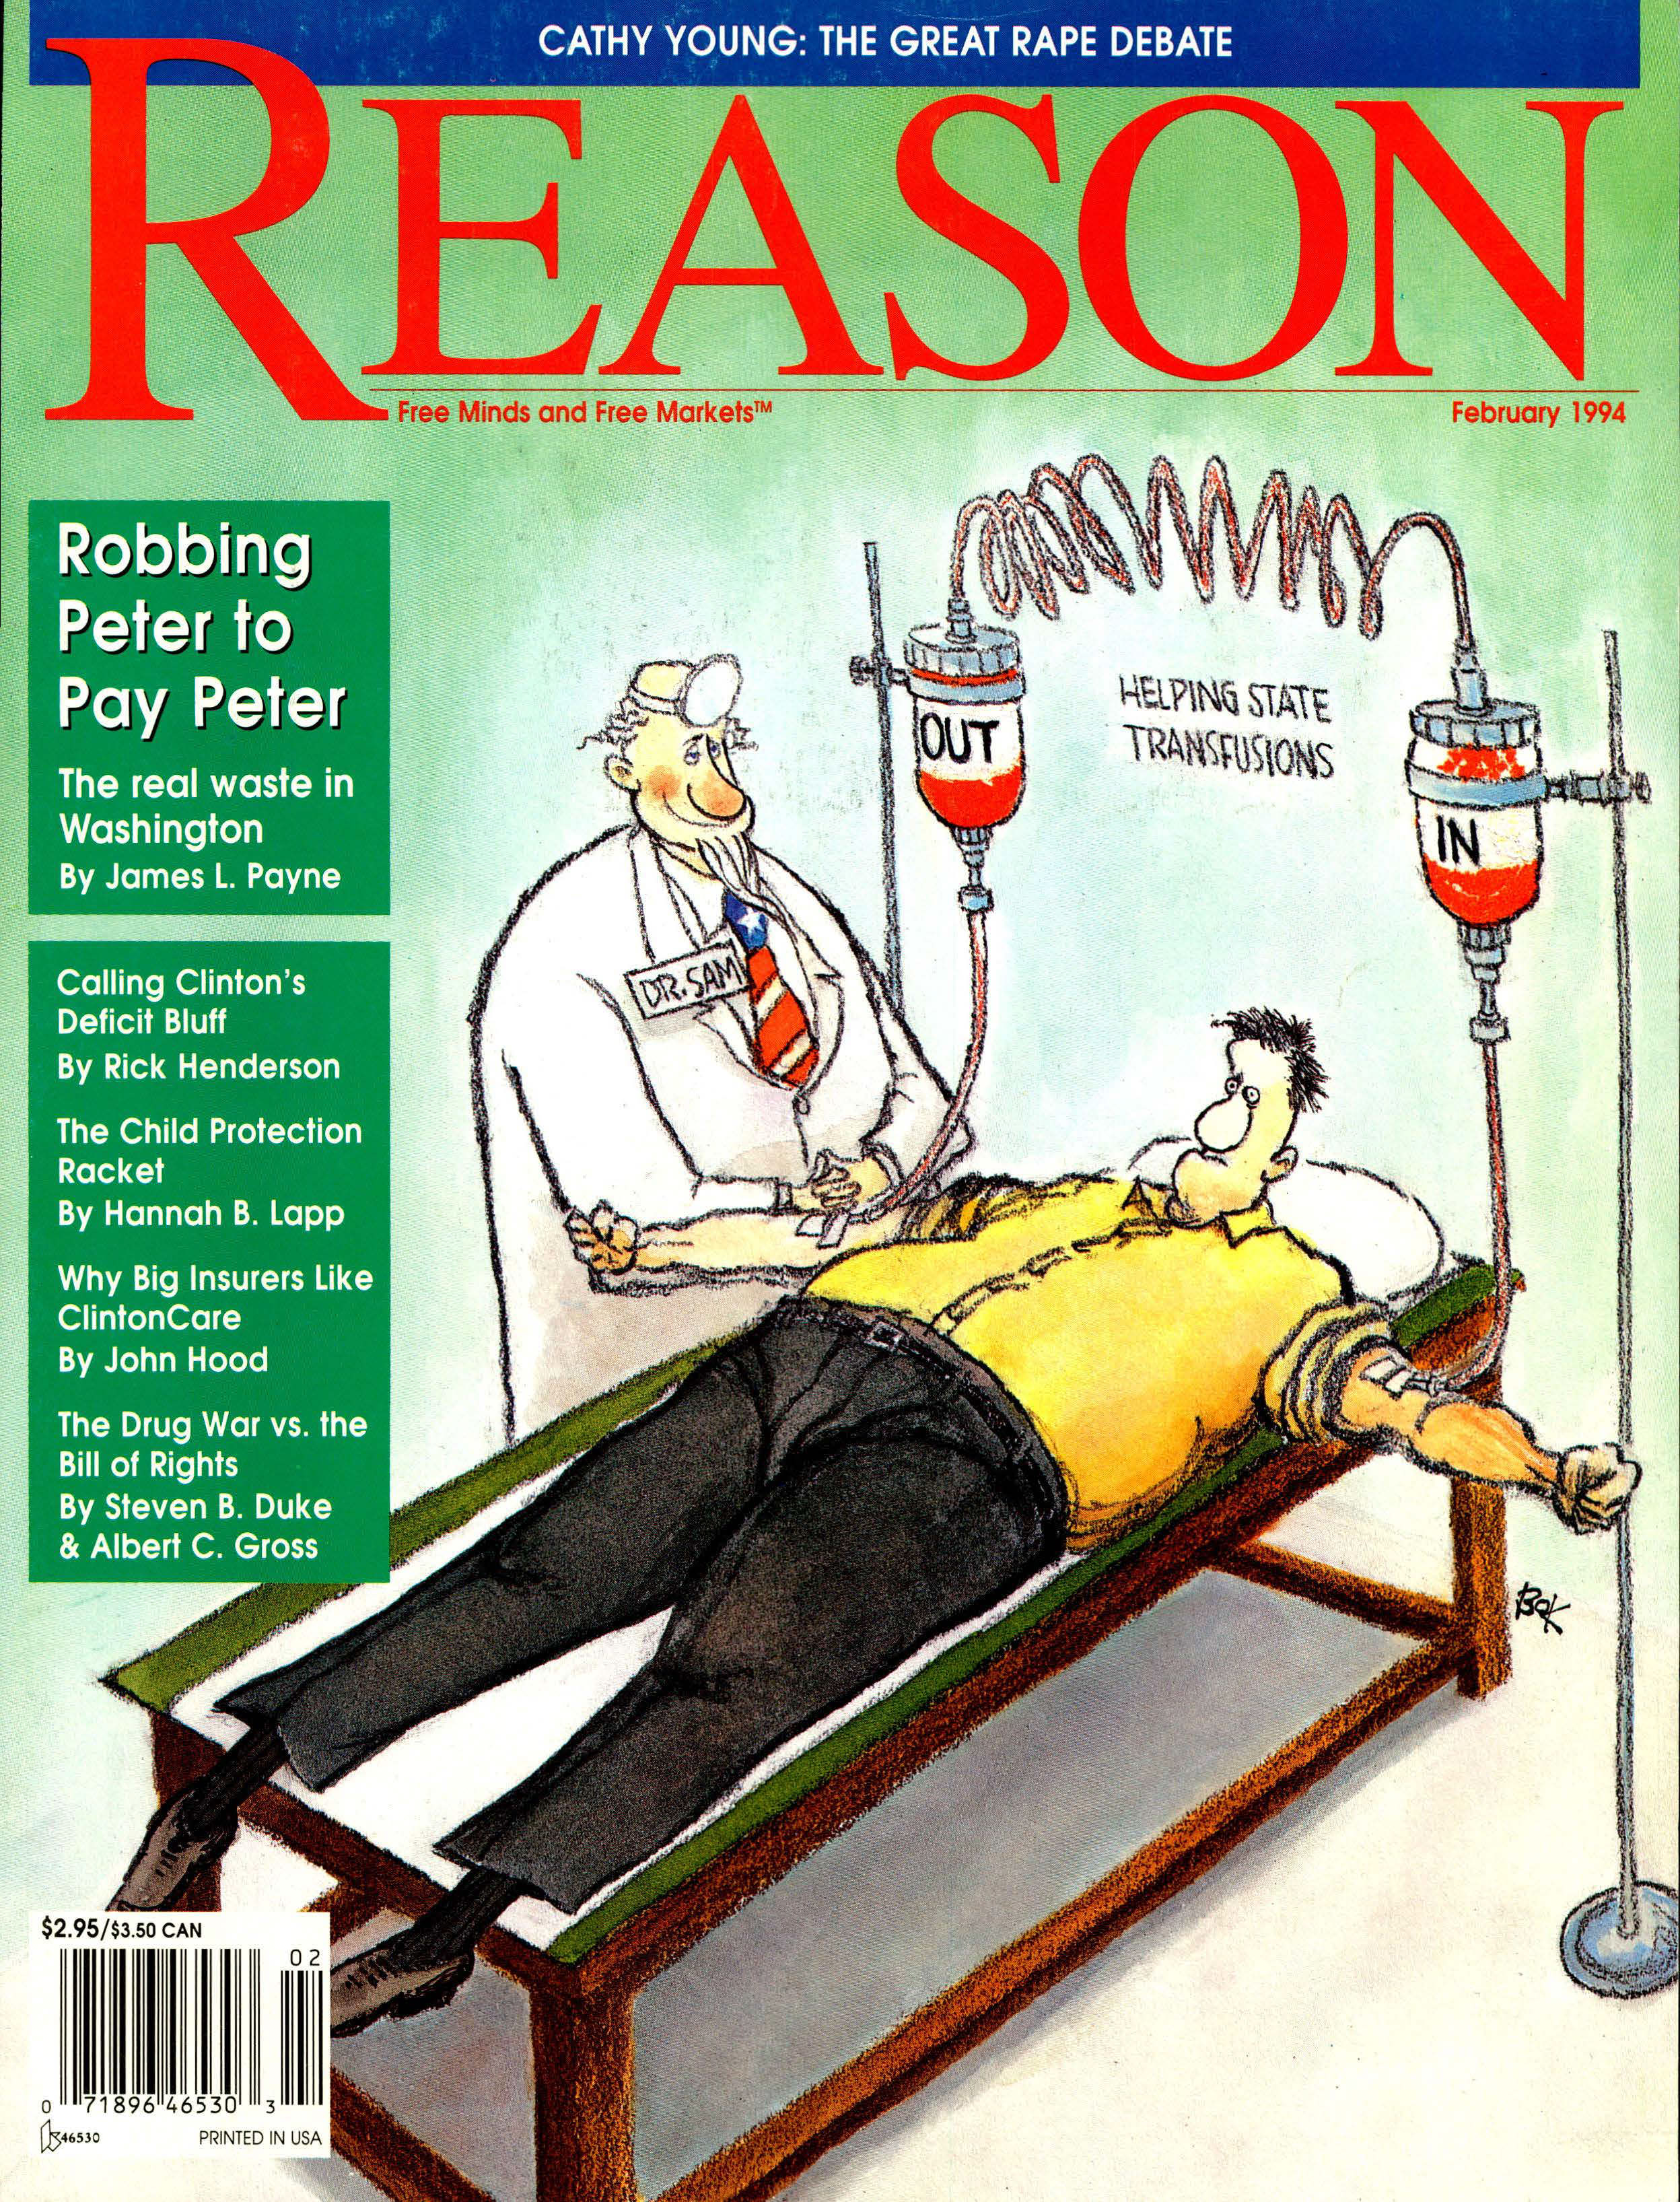 Reason Magazine, February 1994 cover image